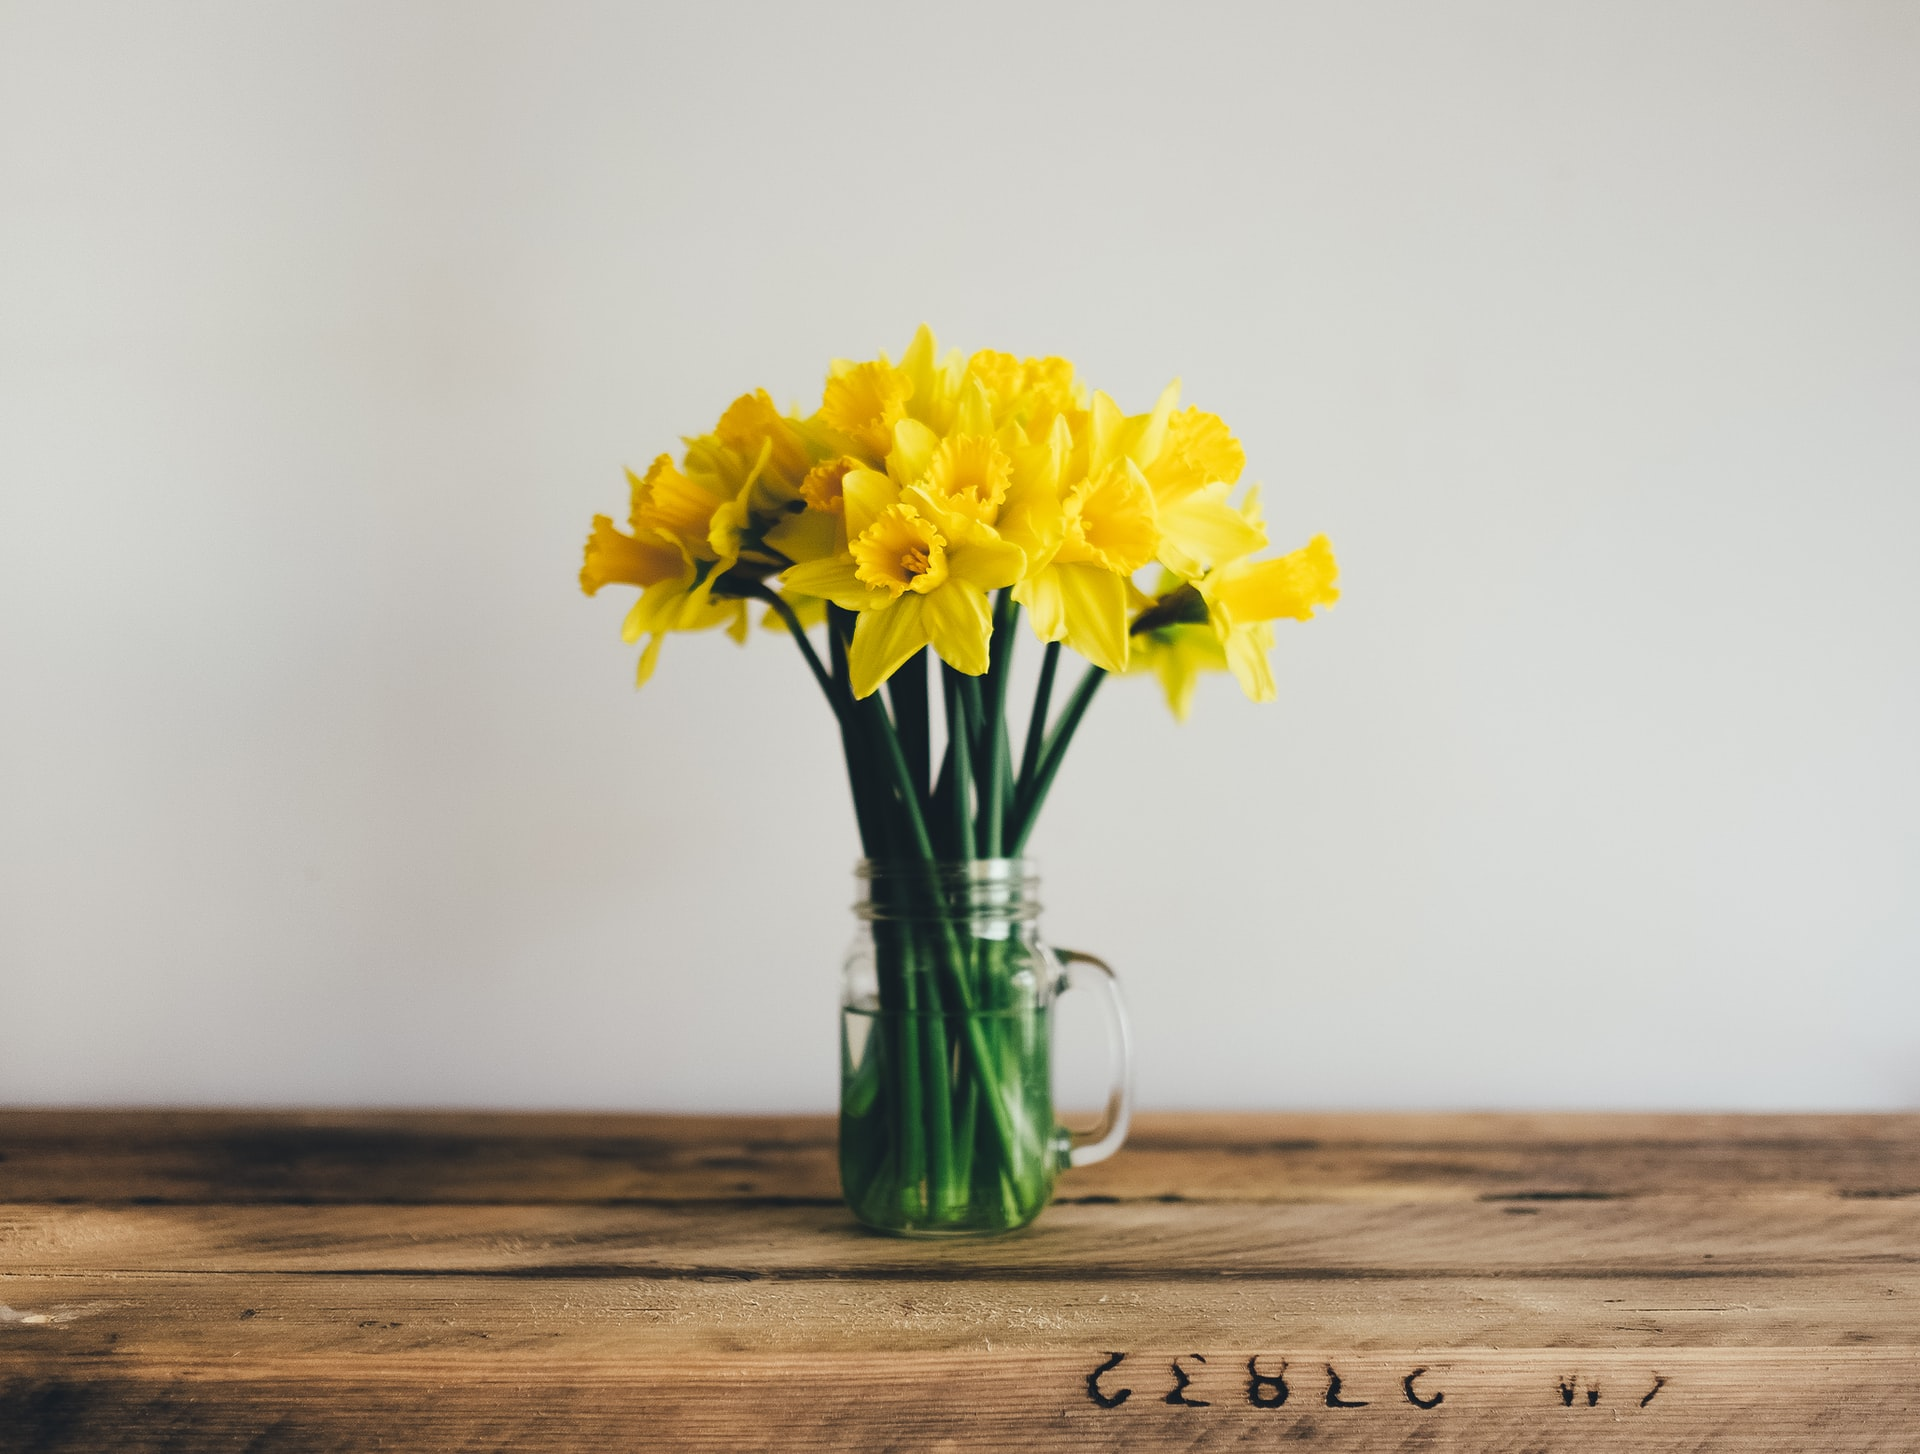 Bunch of Daffodils in a vase on wooden table.